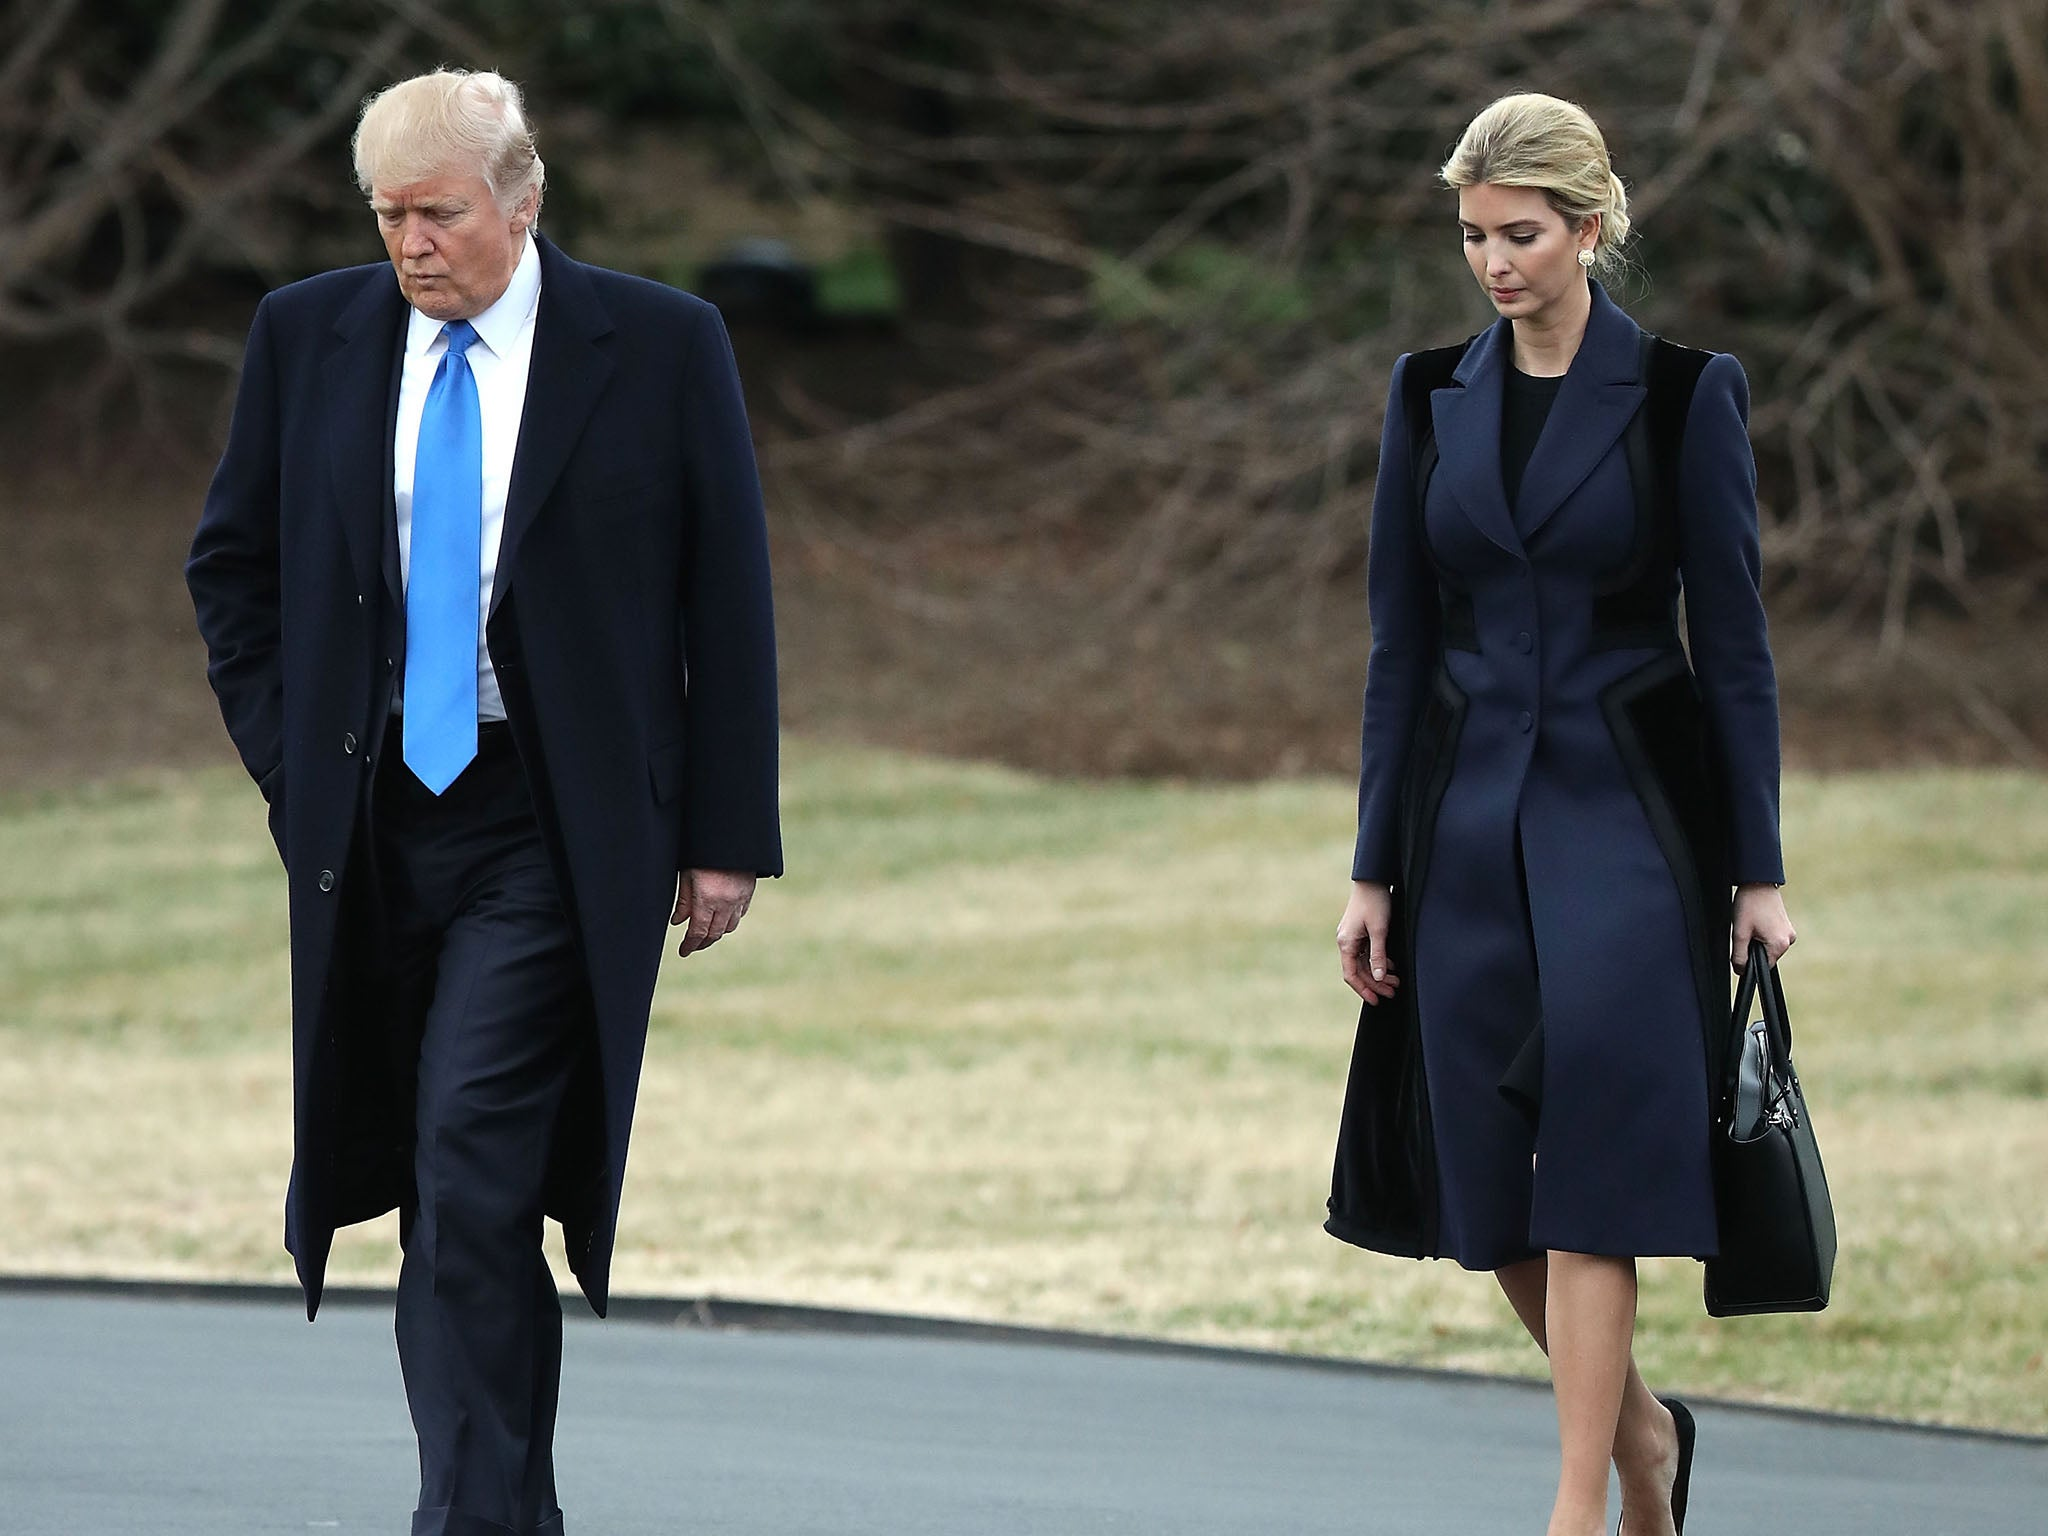 Donald Trump Says Daughter Ivanka Treated So Unfairly By